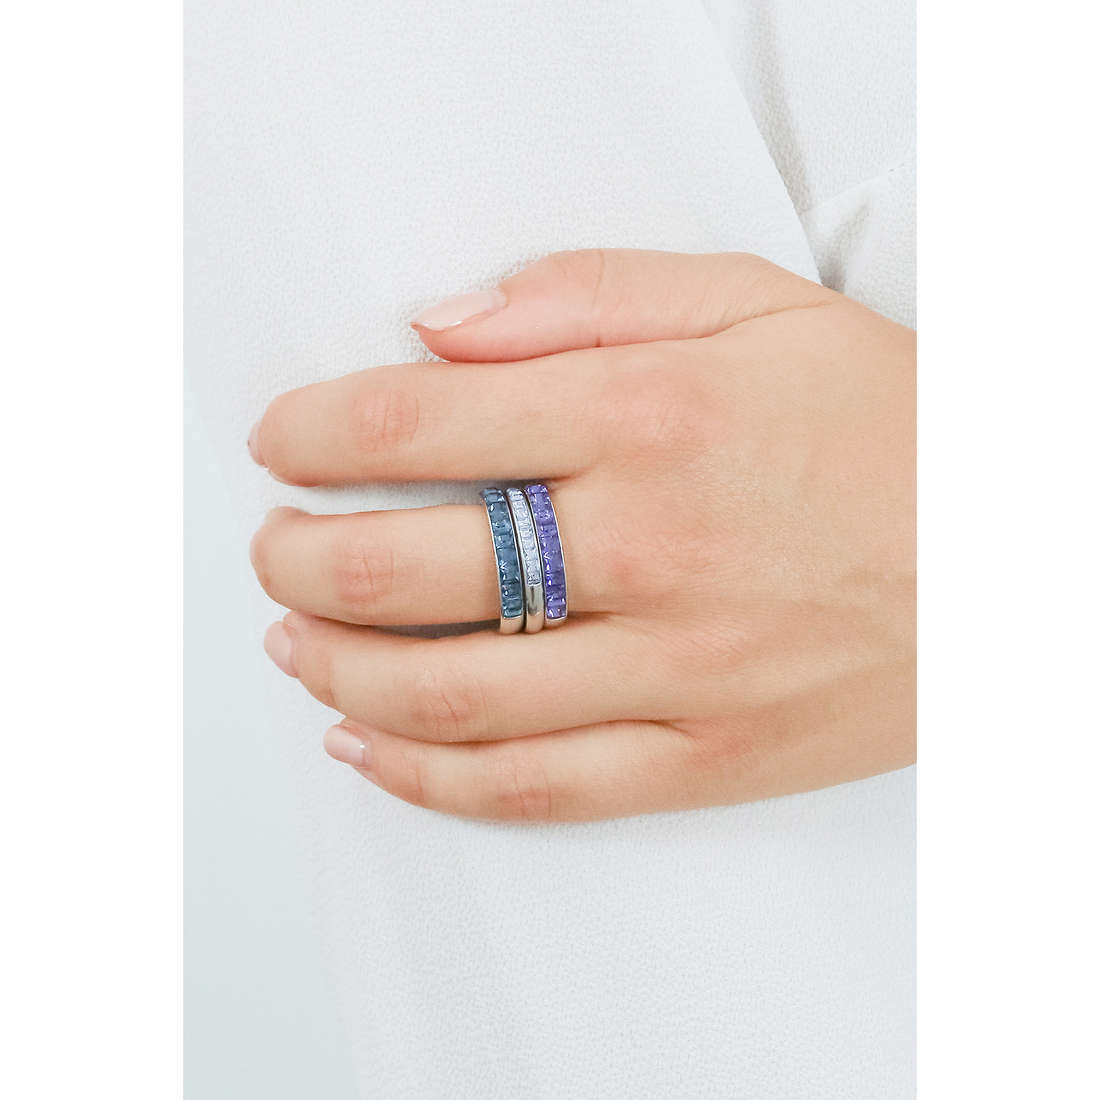 Brosway rings Tring Segno Zodiacale woman BTGZ09A indosso